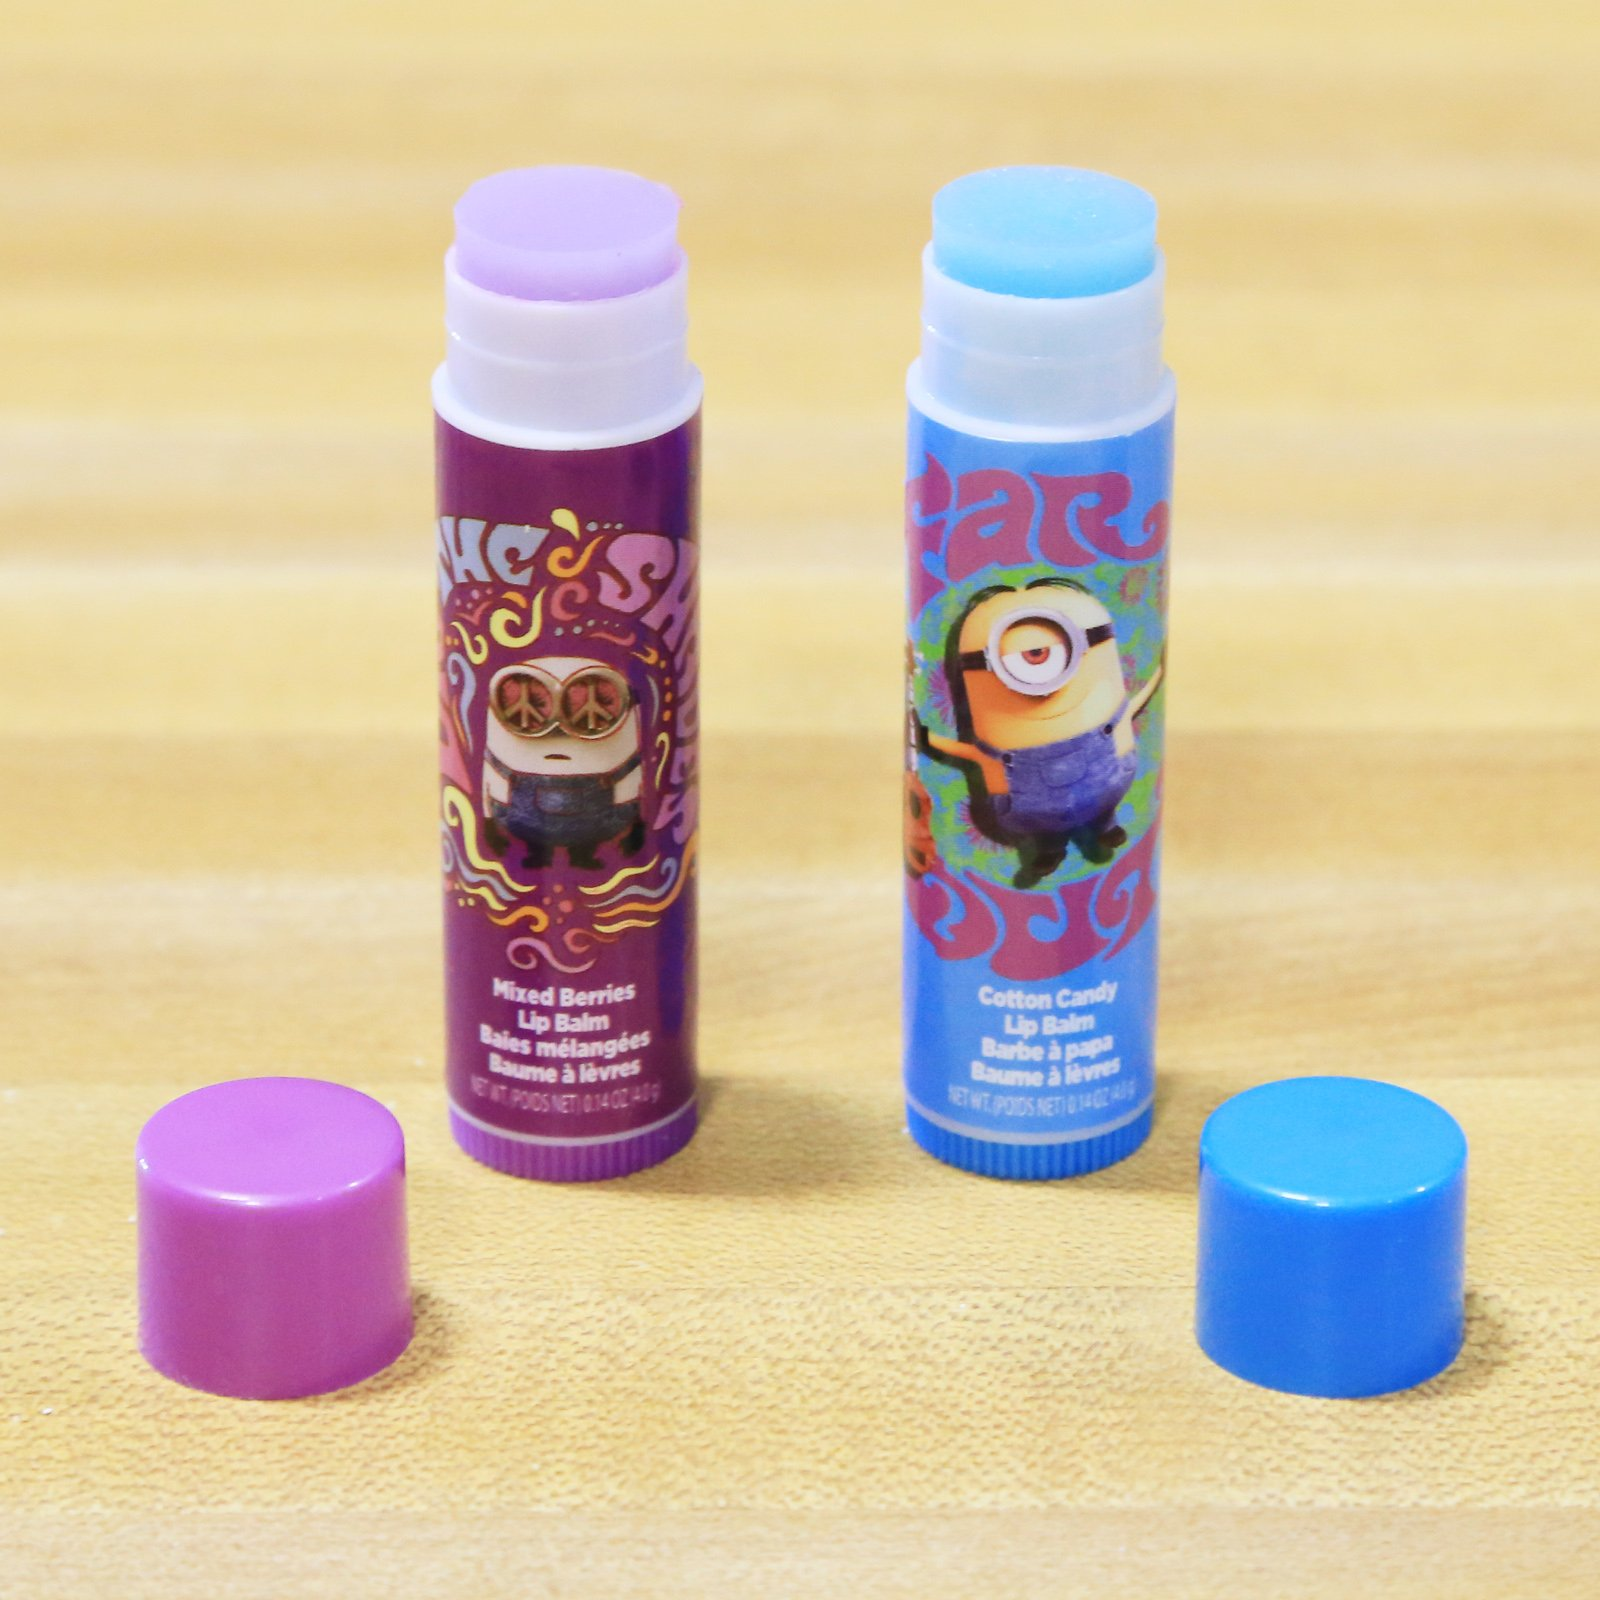 Descpicable Me Minions Lip Balm 2pk With Fun Flavors